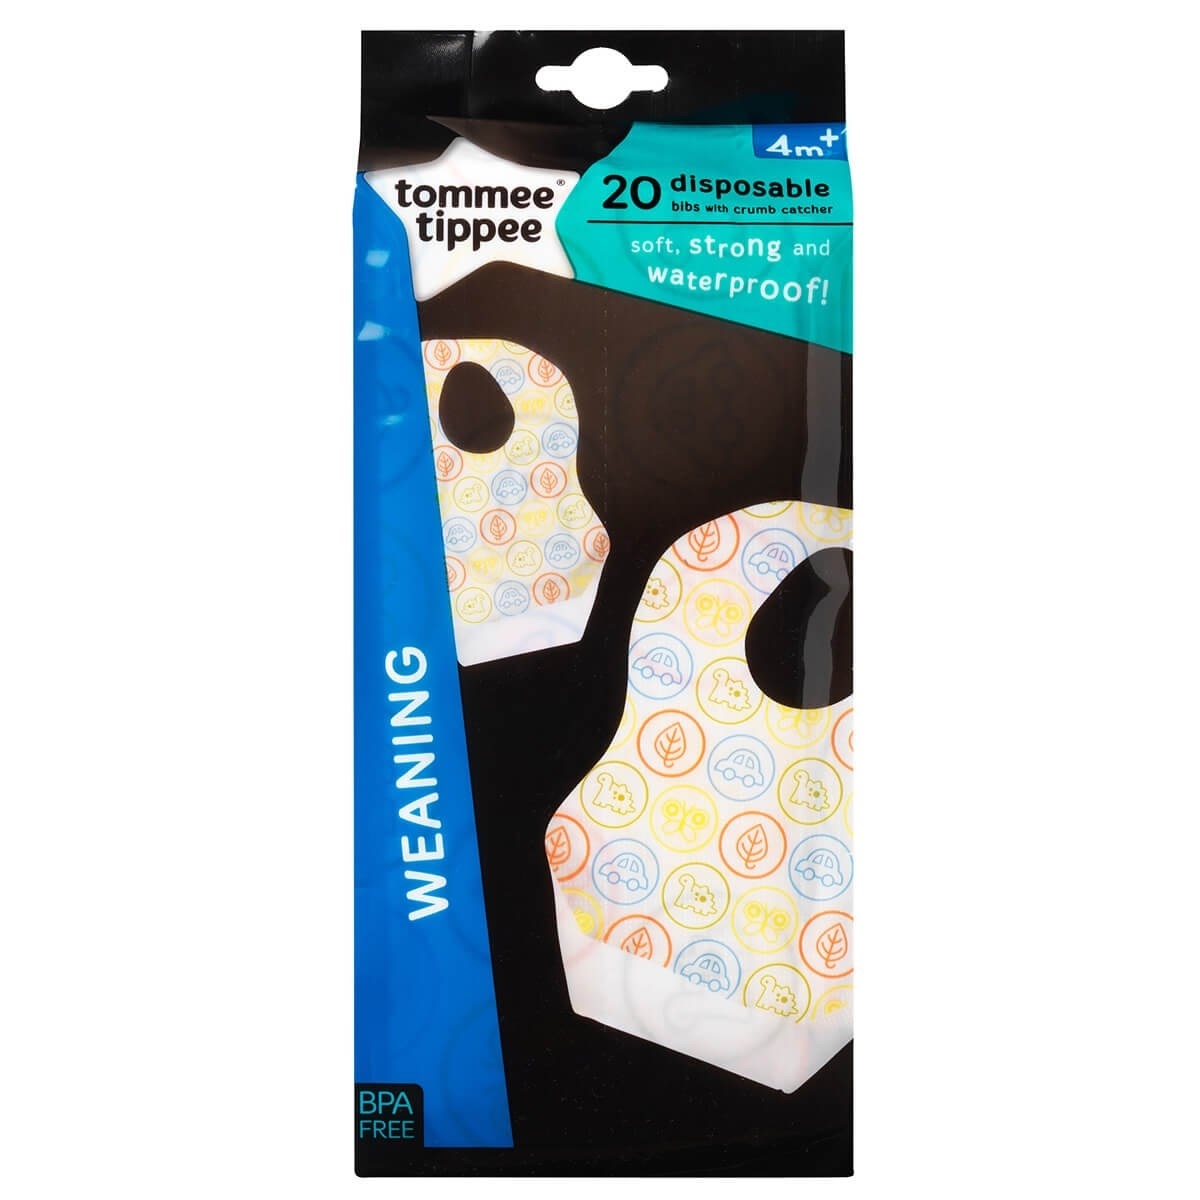 Tommee Tippee 20 Disposable Bibs with Crumb Catcher (4m+)